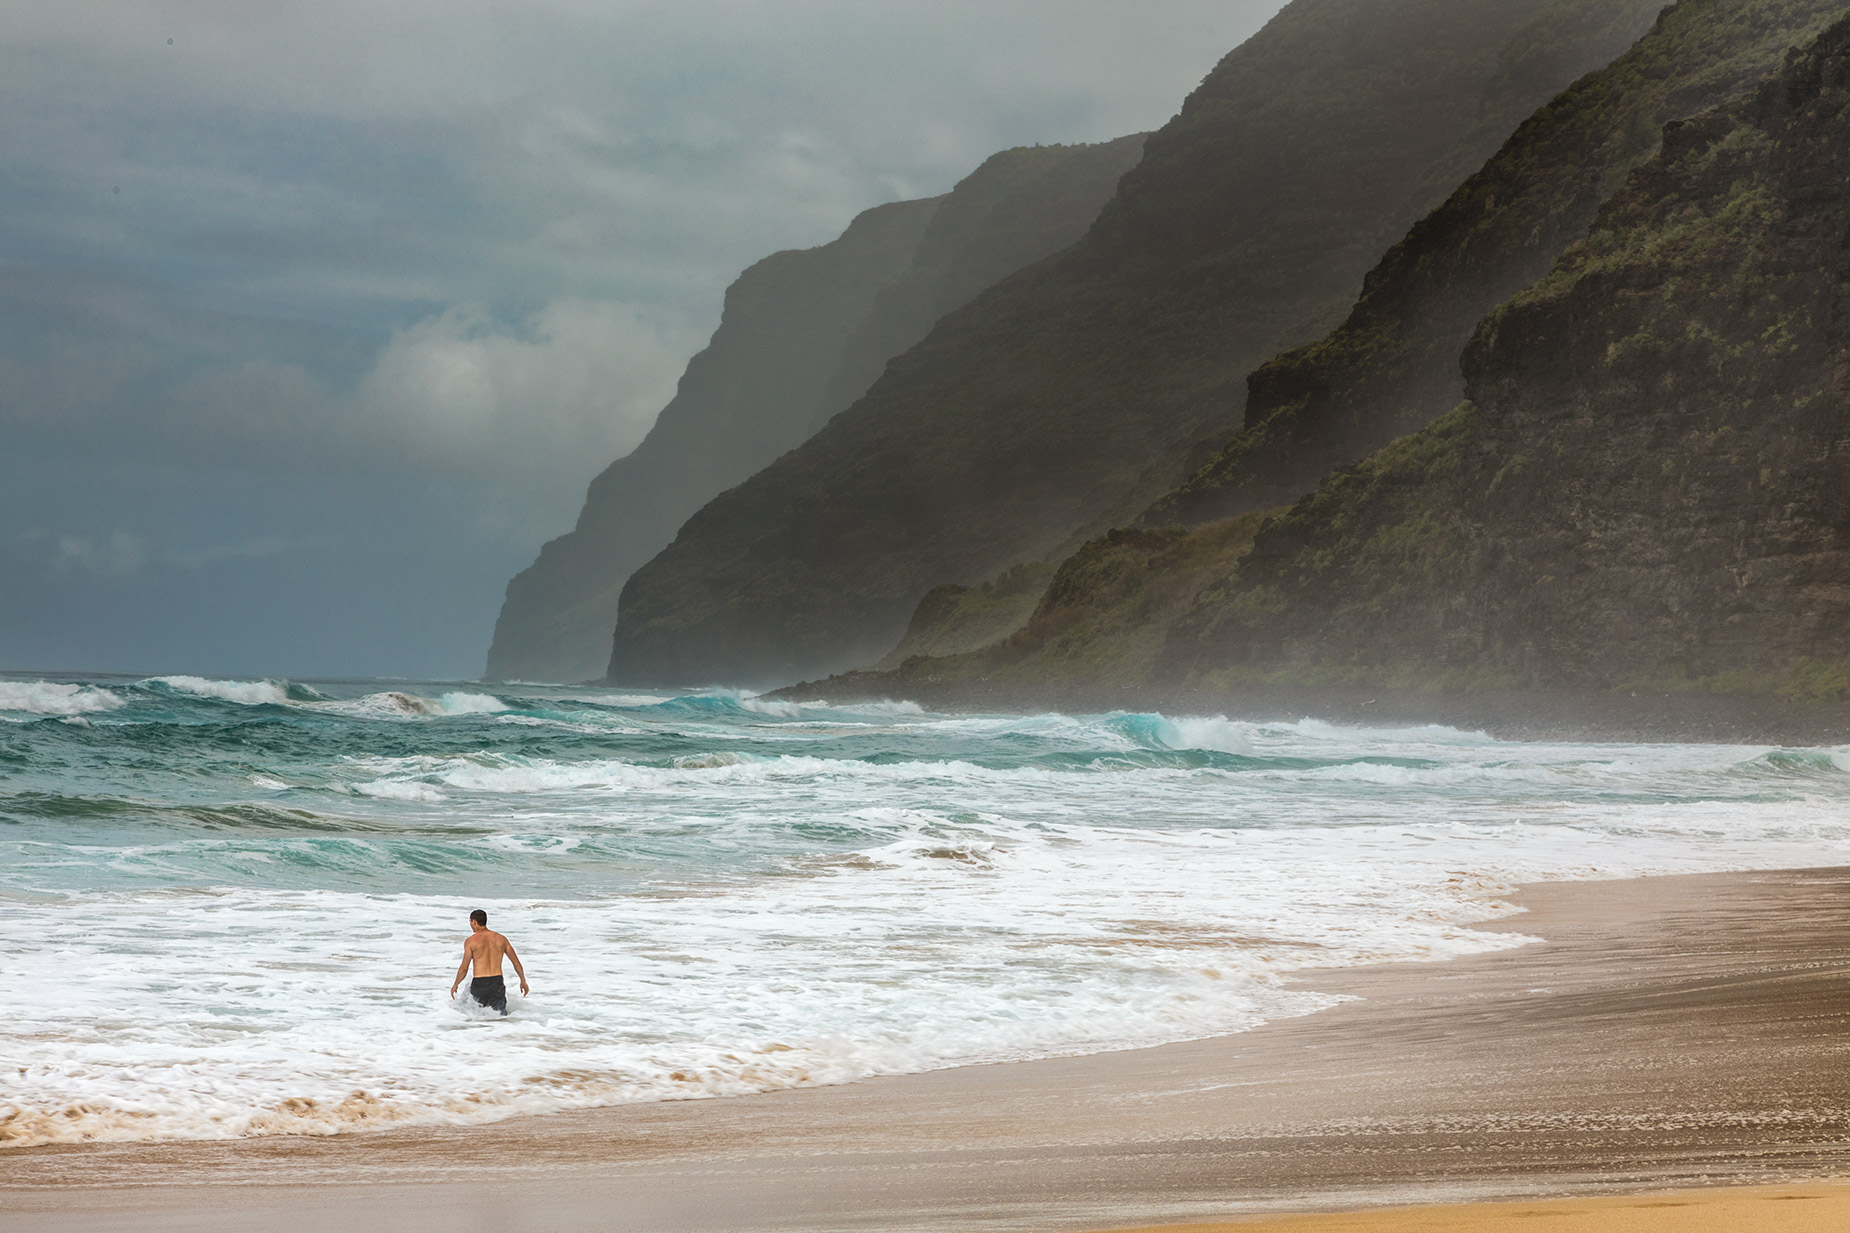 Kauai Polihale Beach. Legend says this this is the Soul Departure location